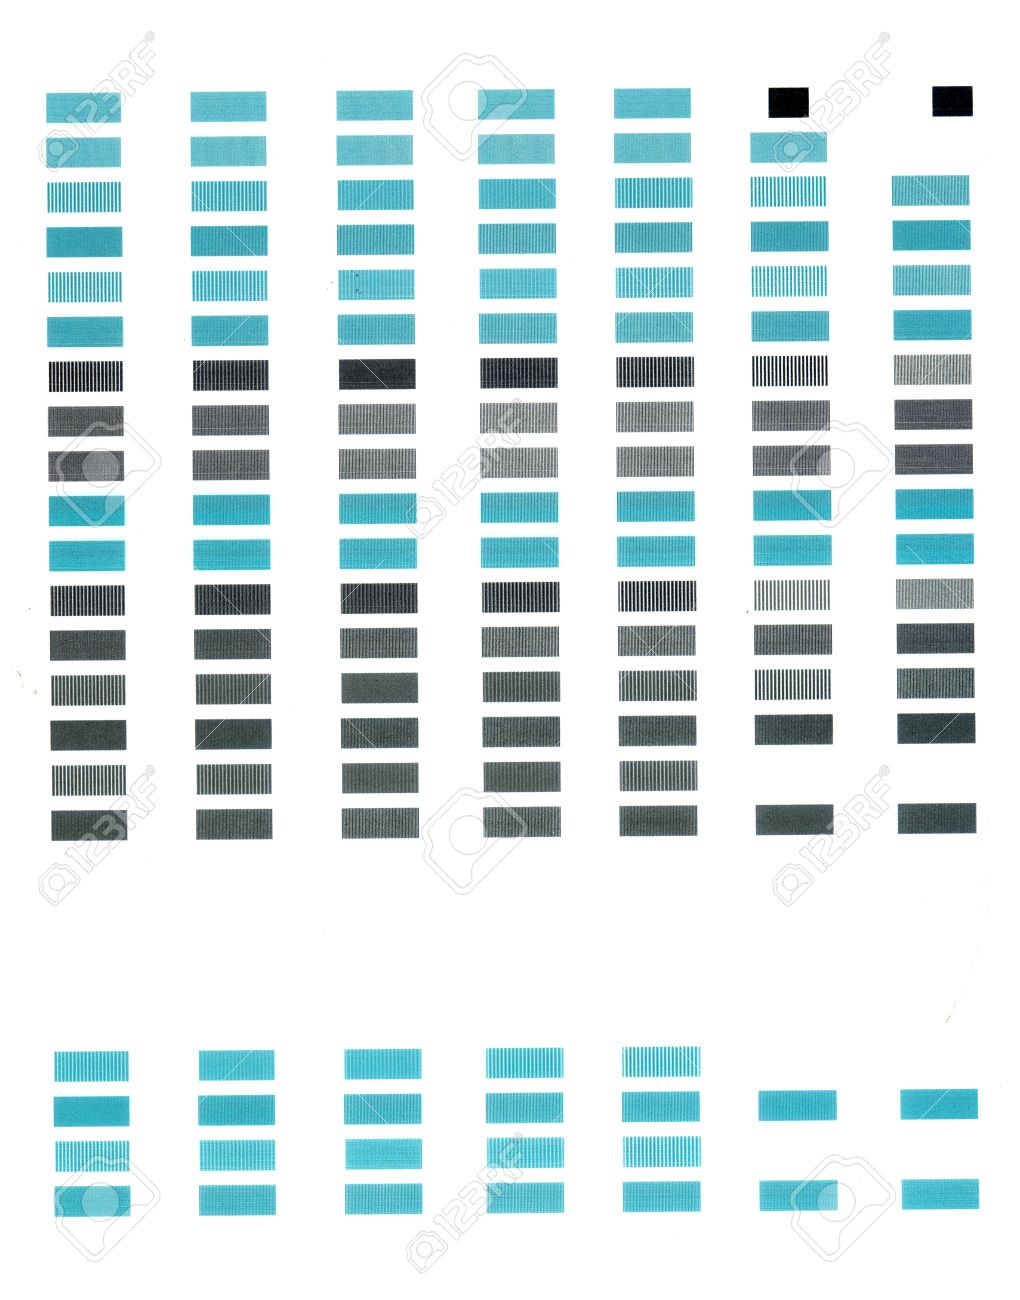 simple test print page with rows of rectangles of blue color